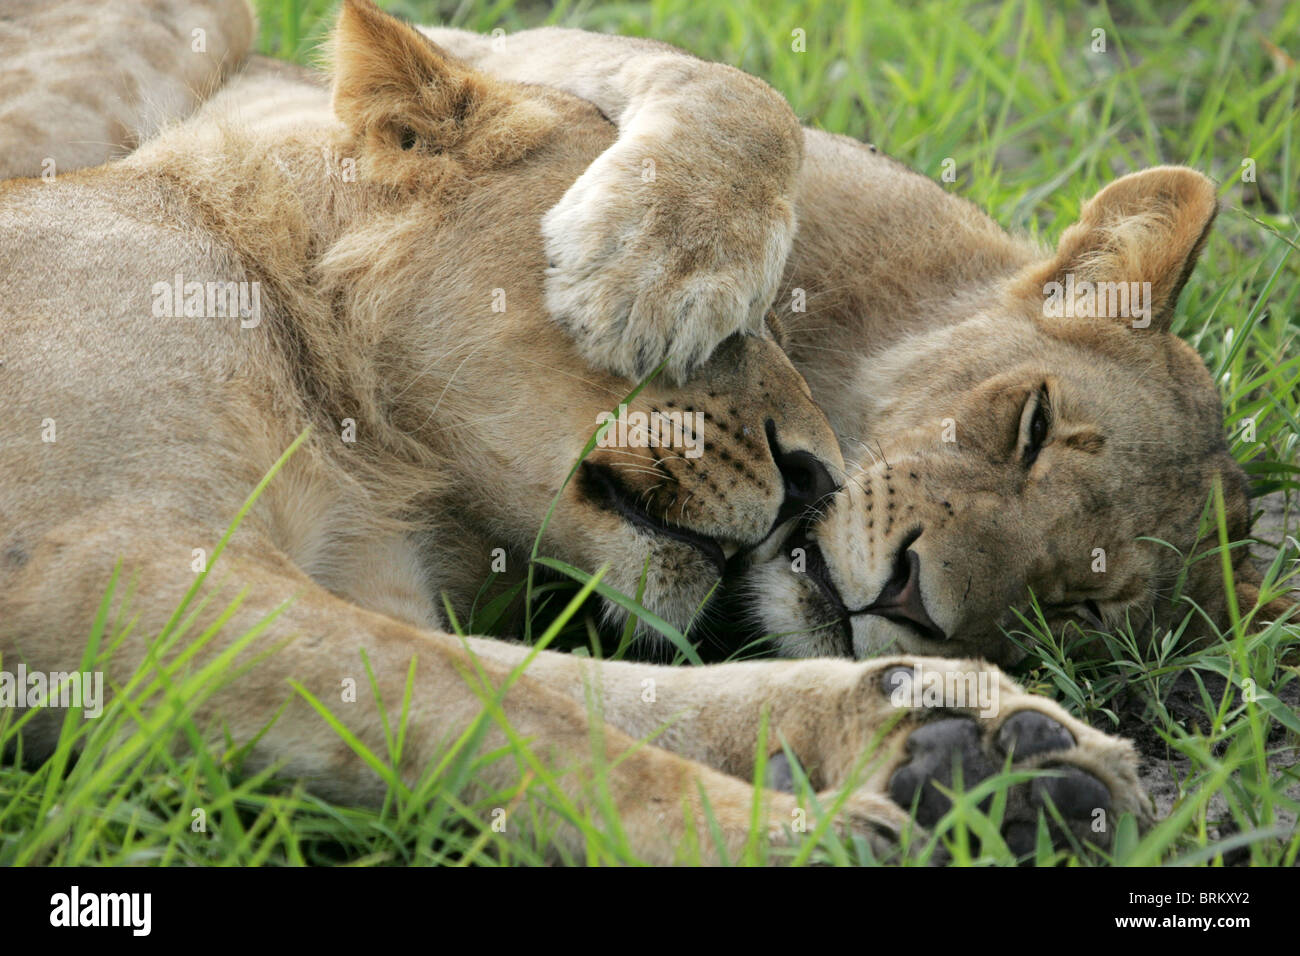 Lioness with paw over the eye of another resting in green grass - Stock Photo